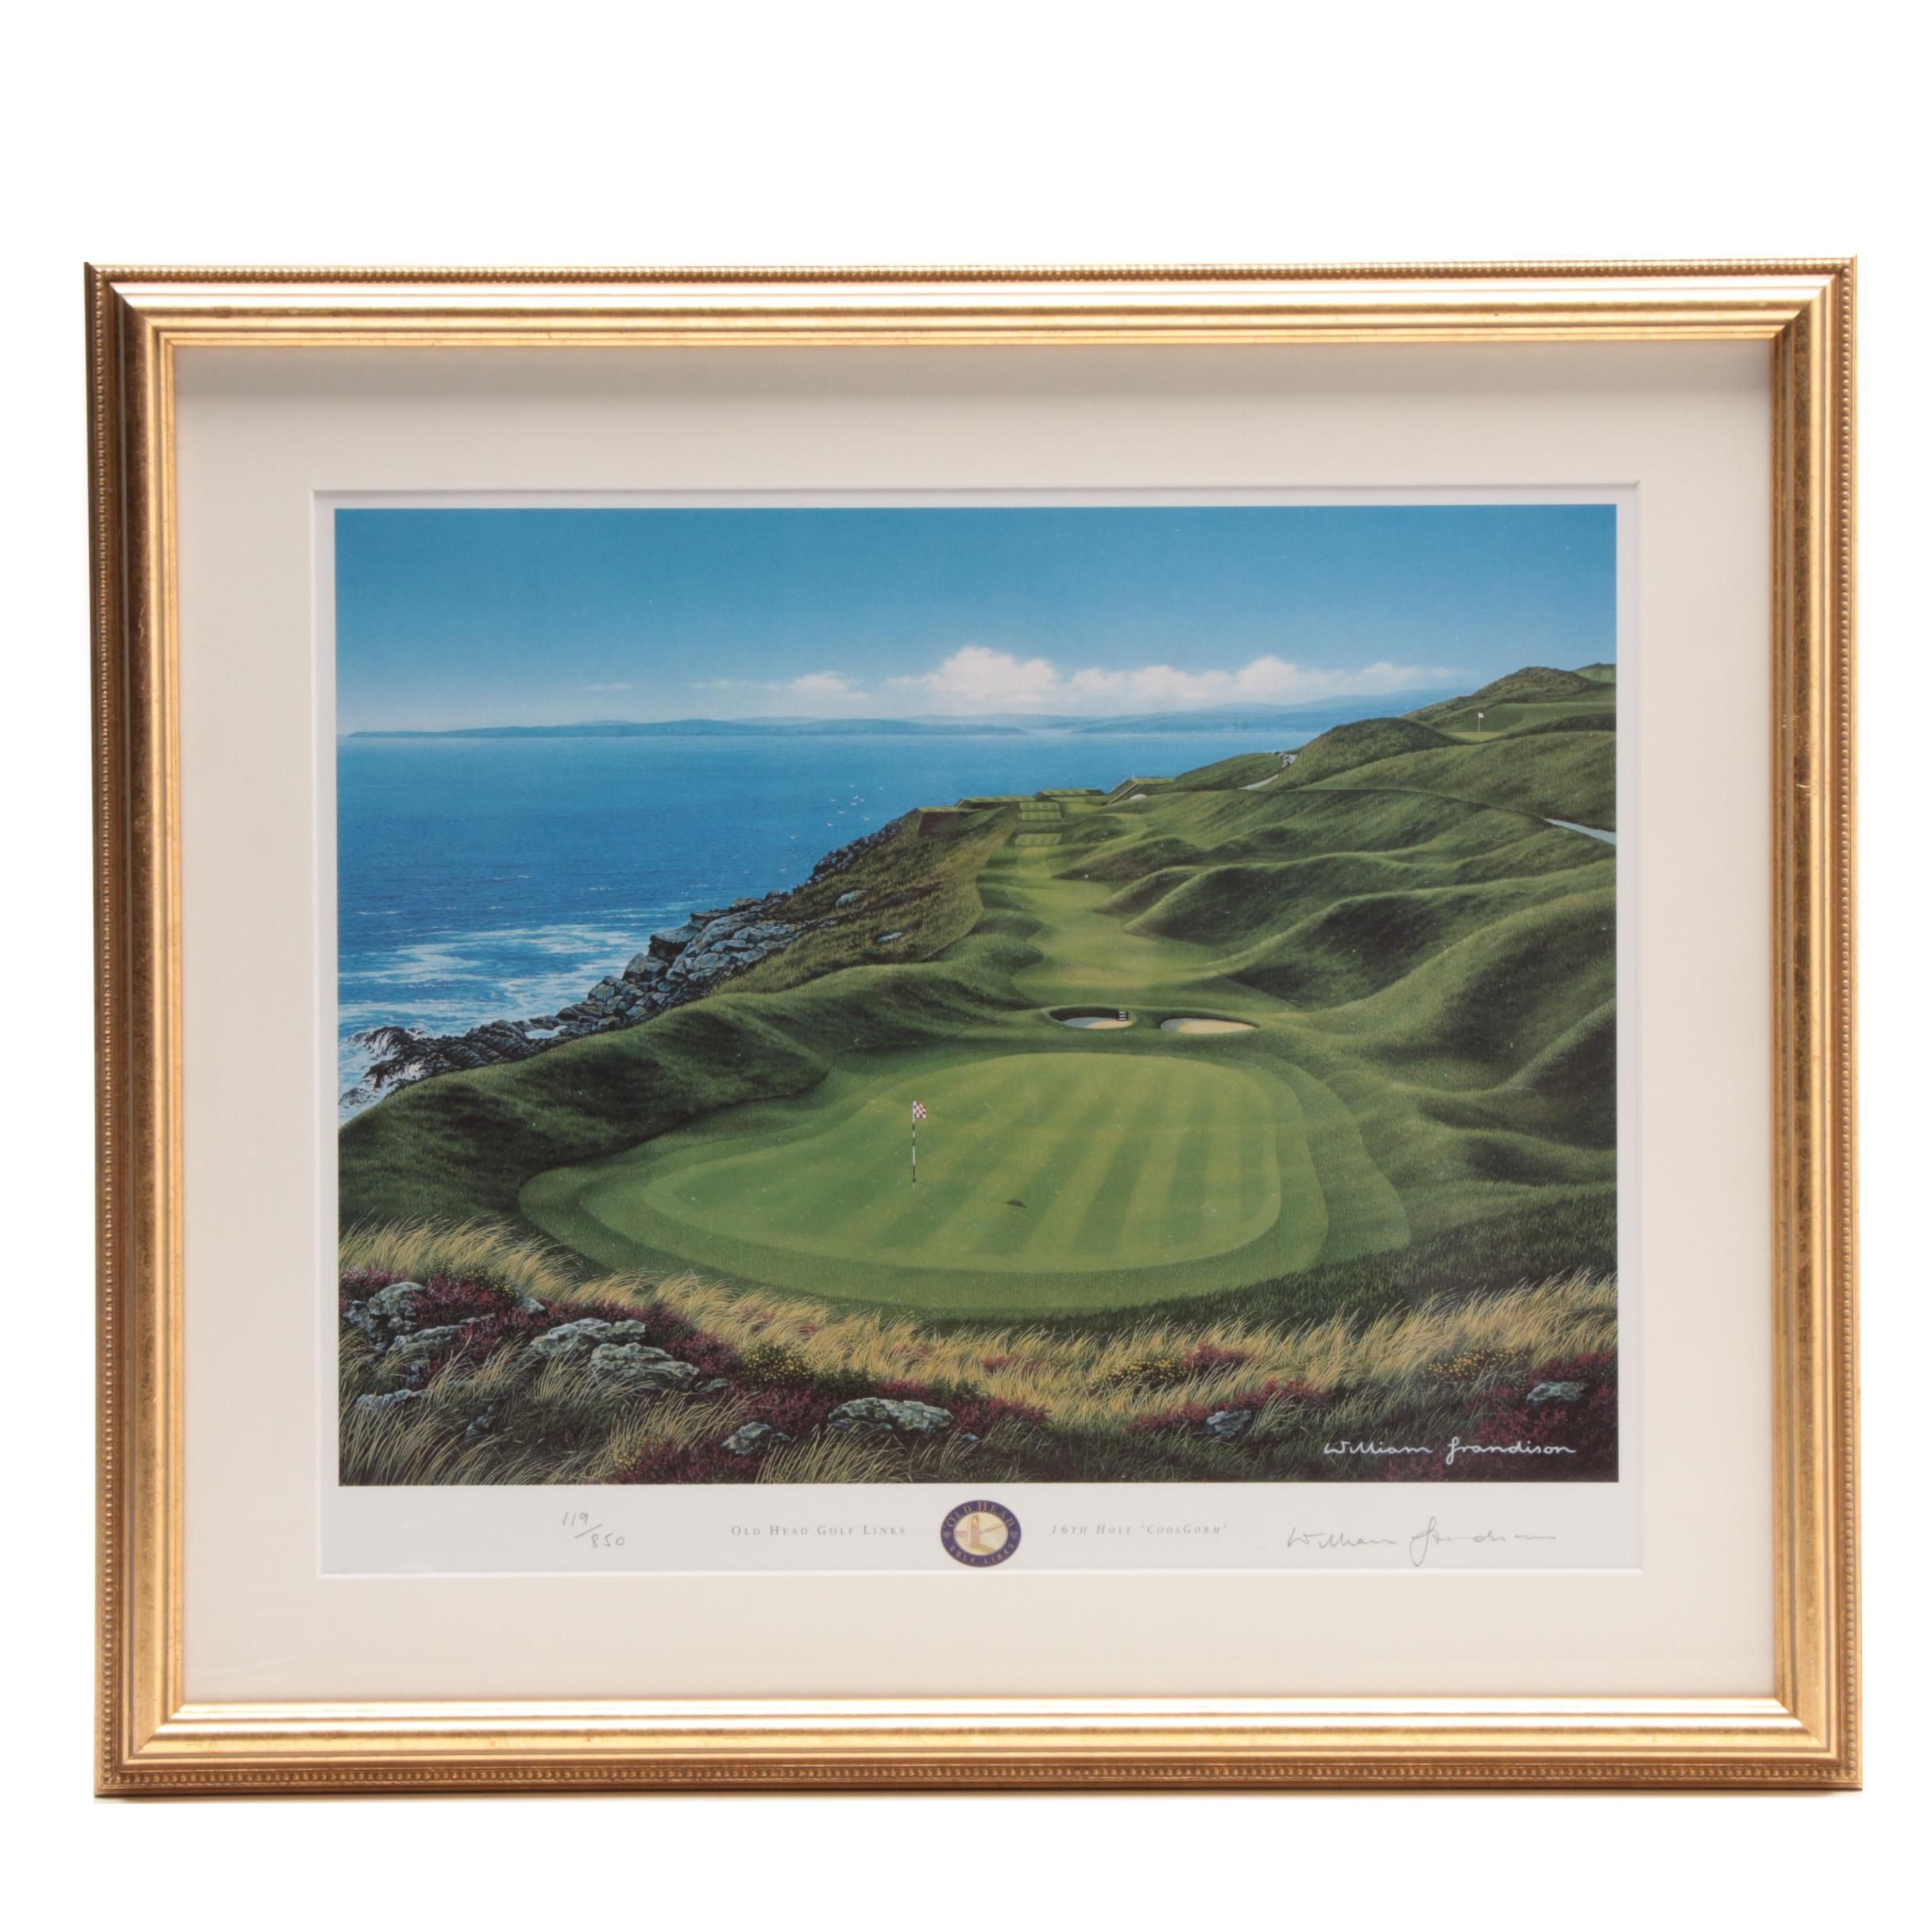 "William Grandison Limited Edition Offset Lithograph ""Old Head Golf Links"""